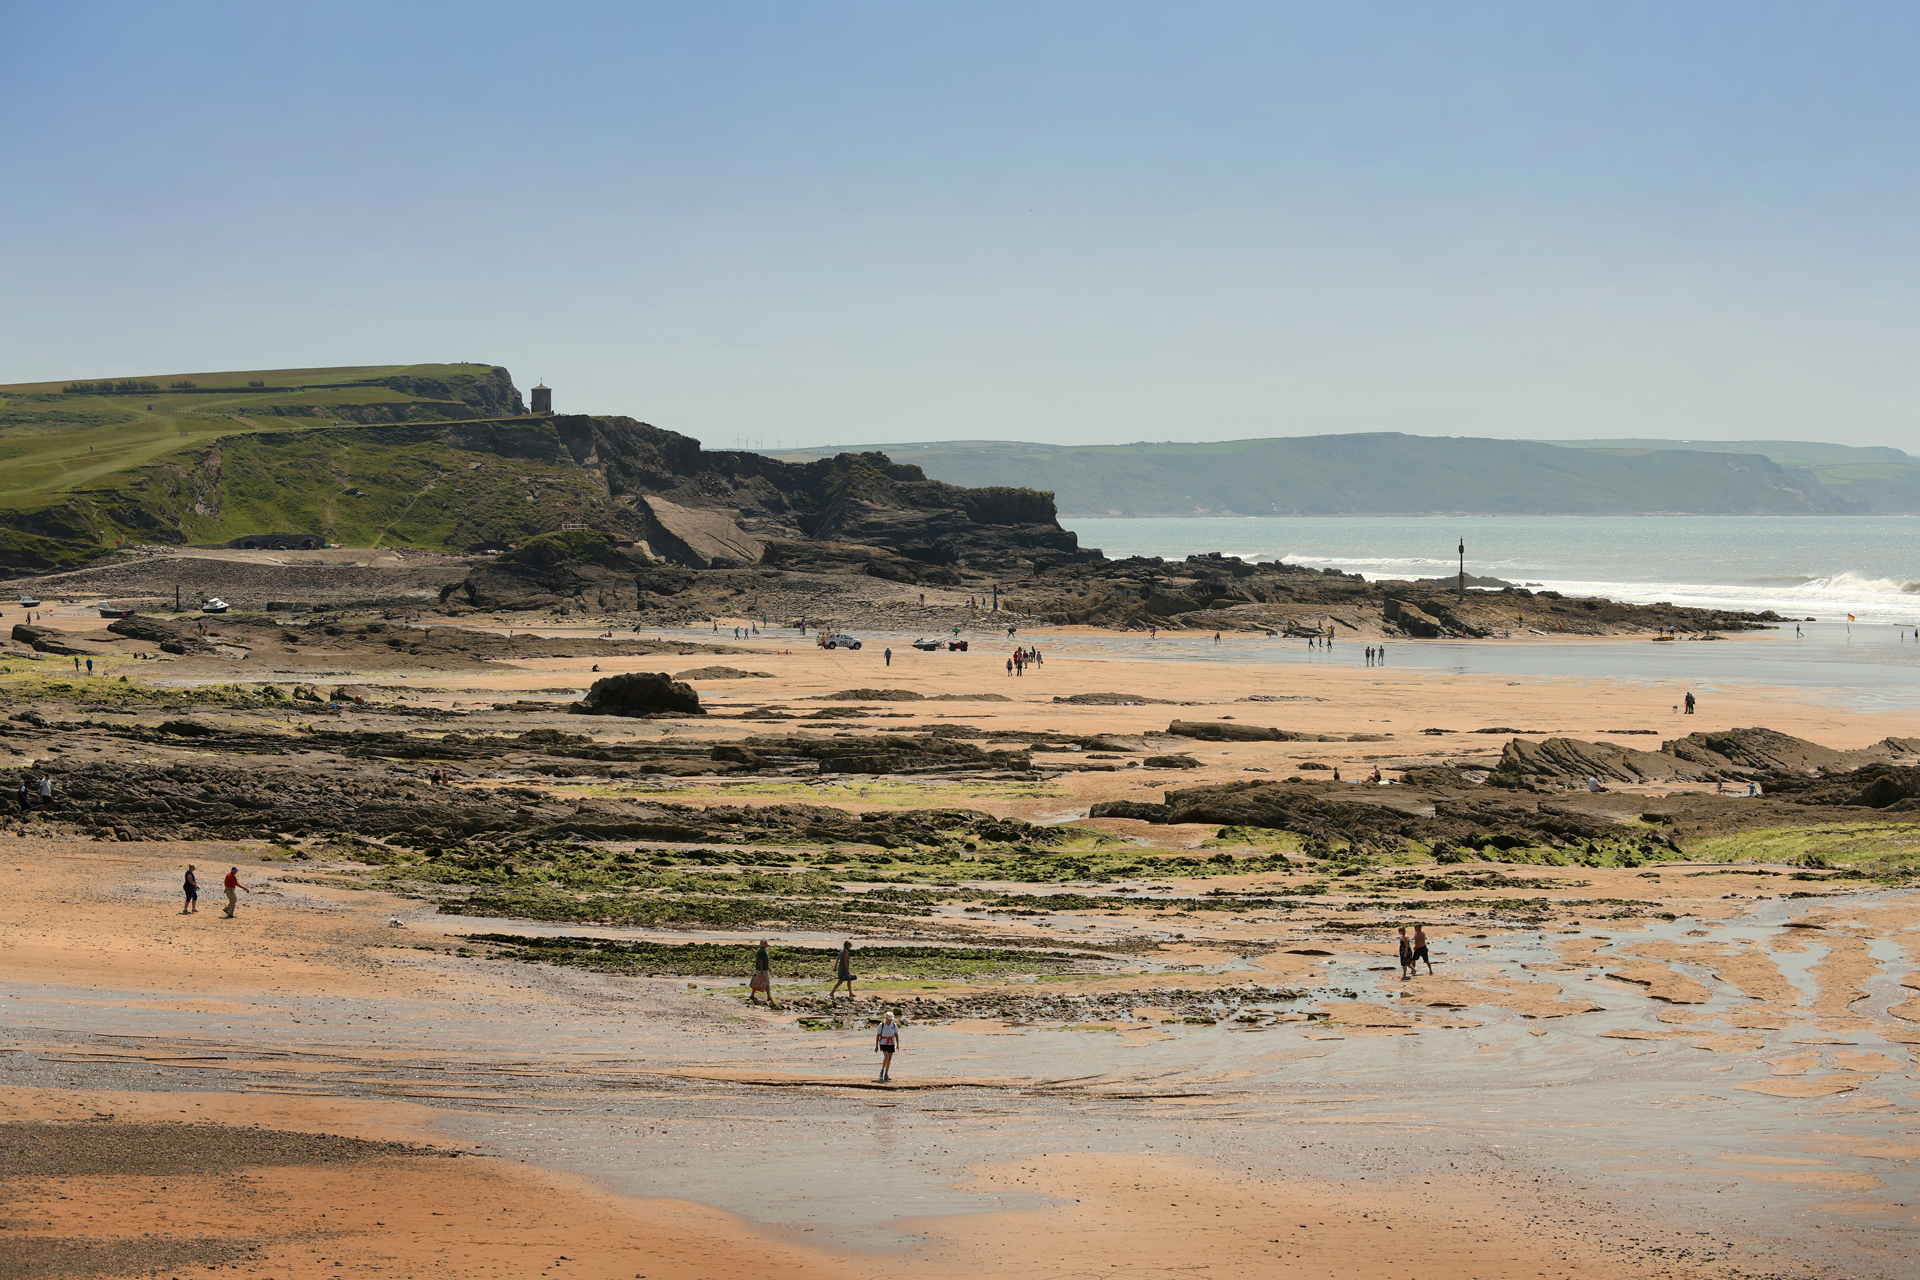 Crooklets Beach, one of several Blue Flag beaches in and around Bude in north Cornwall